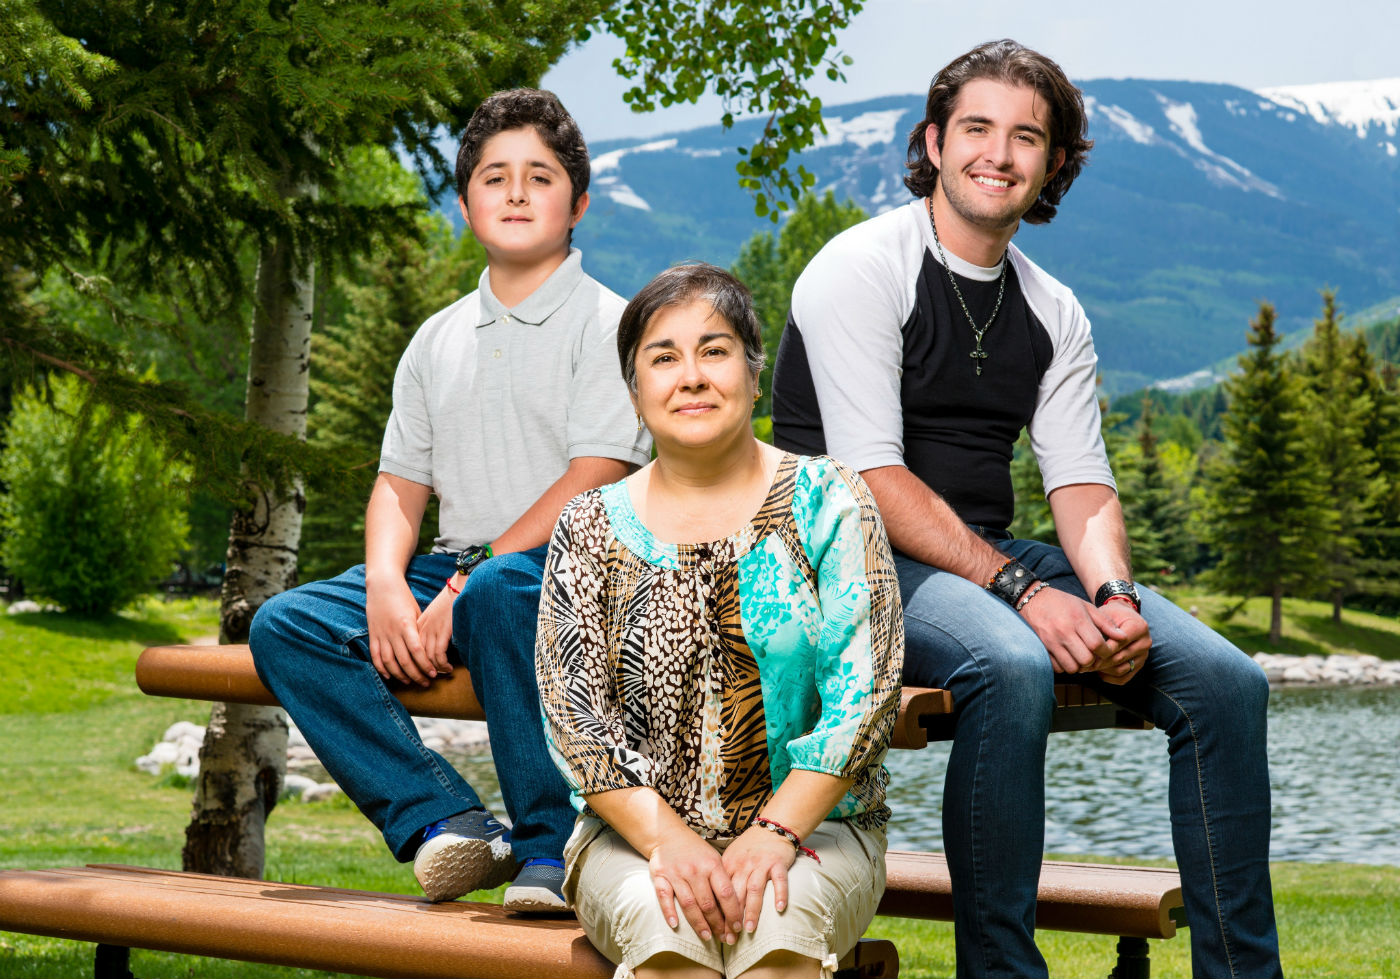 The Loera family story together for National Hispanic Heritage Month